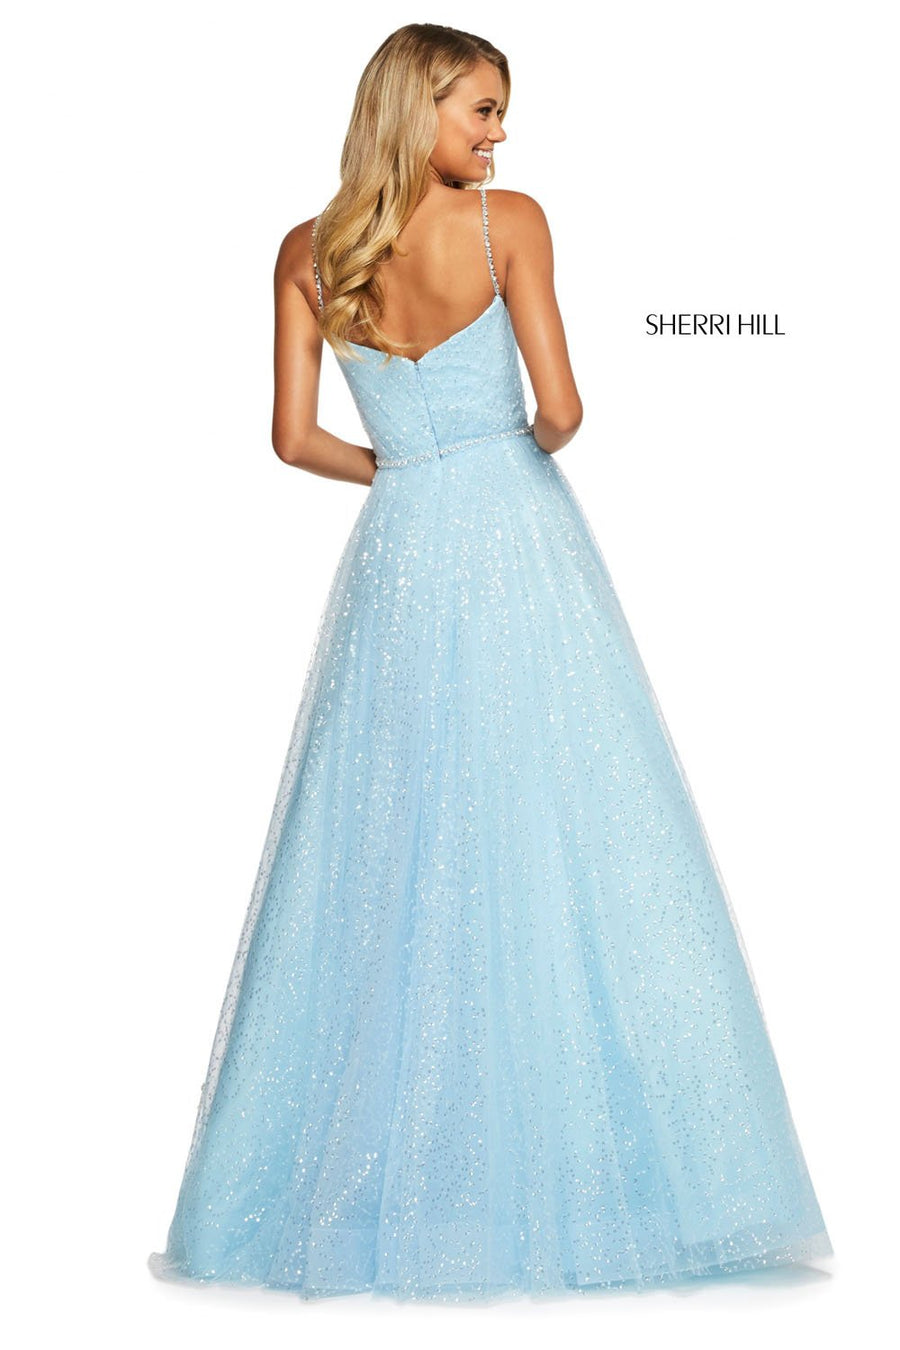 Sherri Hill 53637 prom dress images.  Sherri Hill 53637 is available in these colors: Ivory, Blush, Yellow, Light Blue, Lilac.